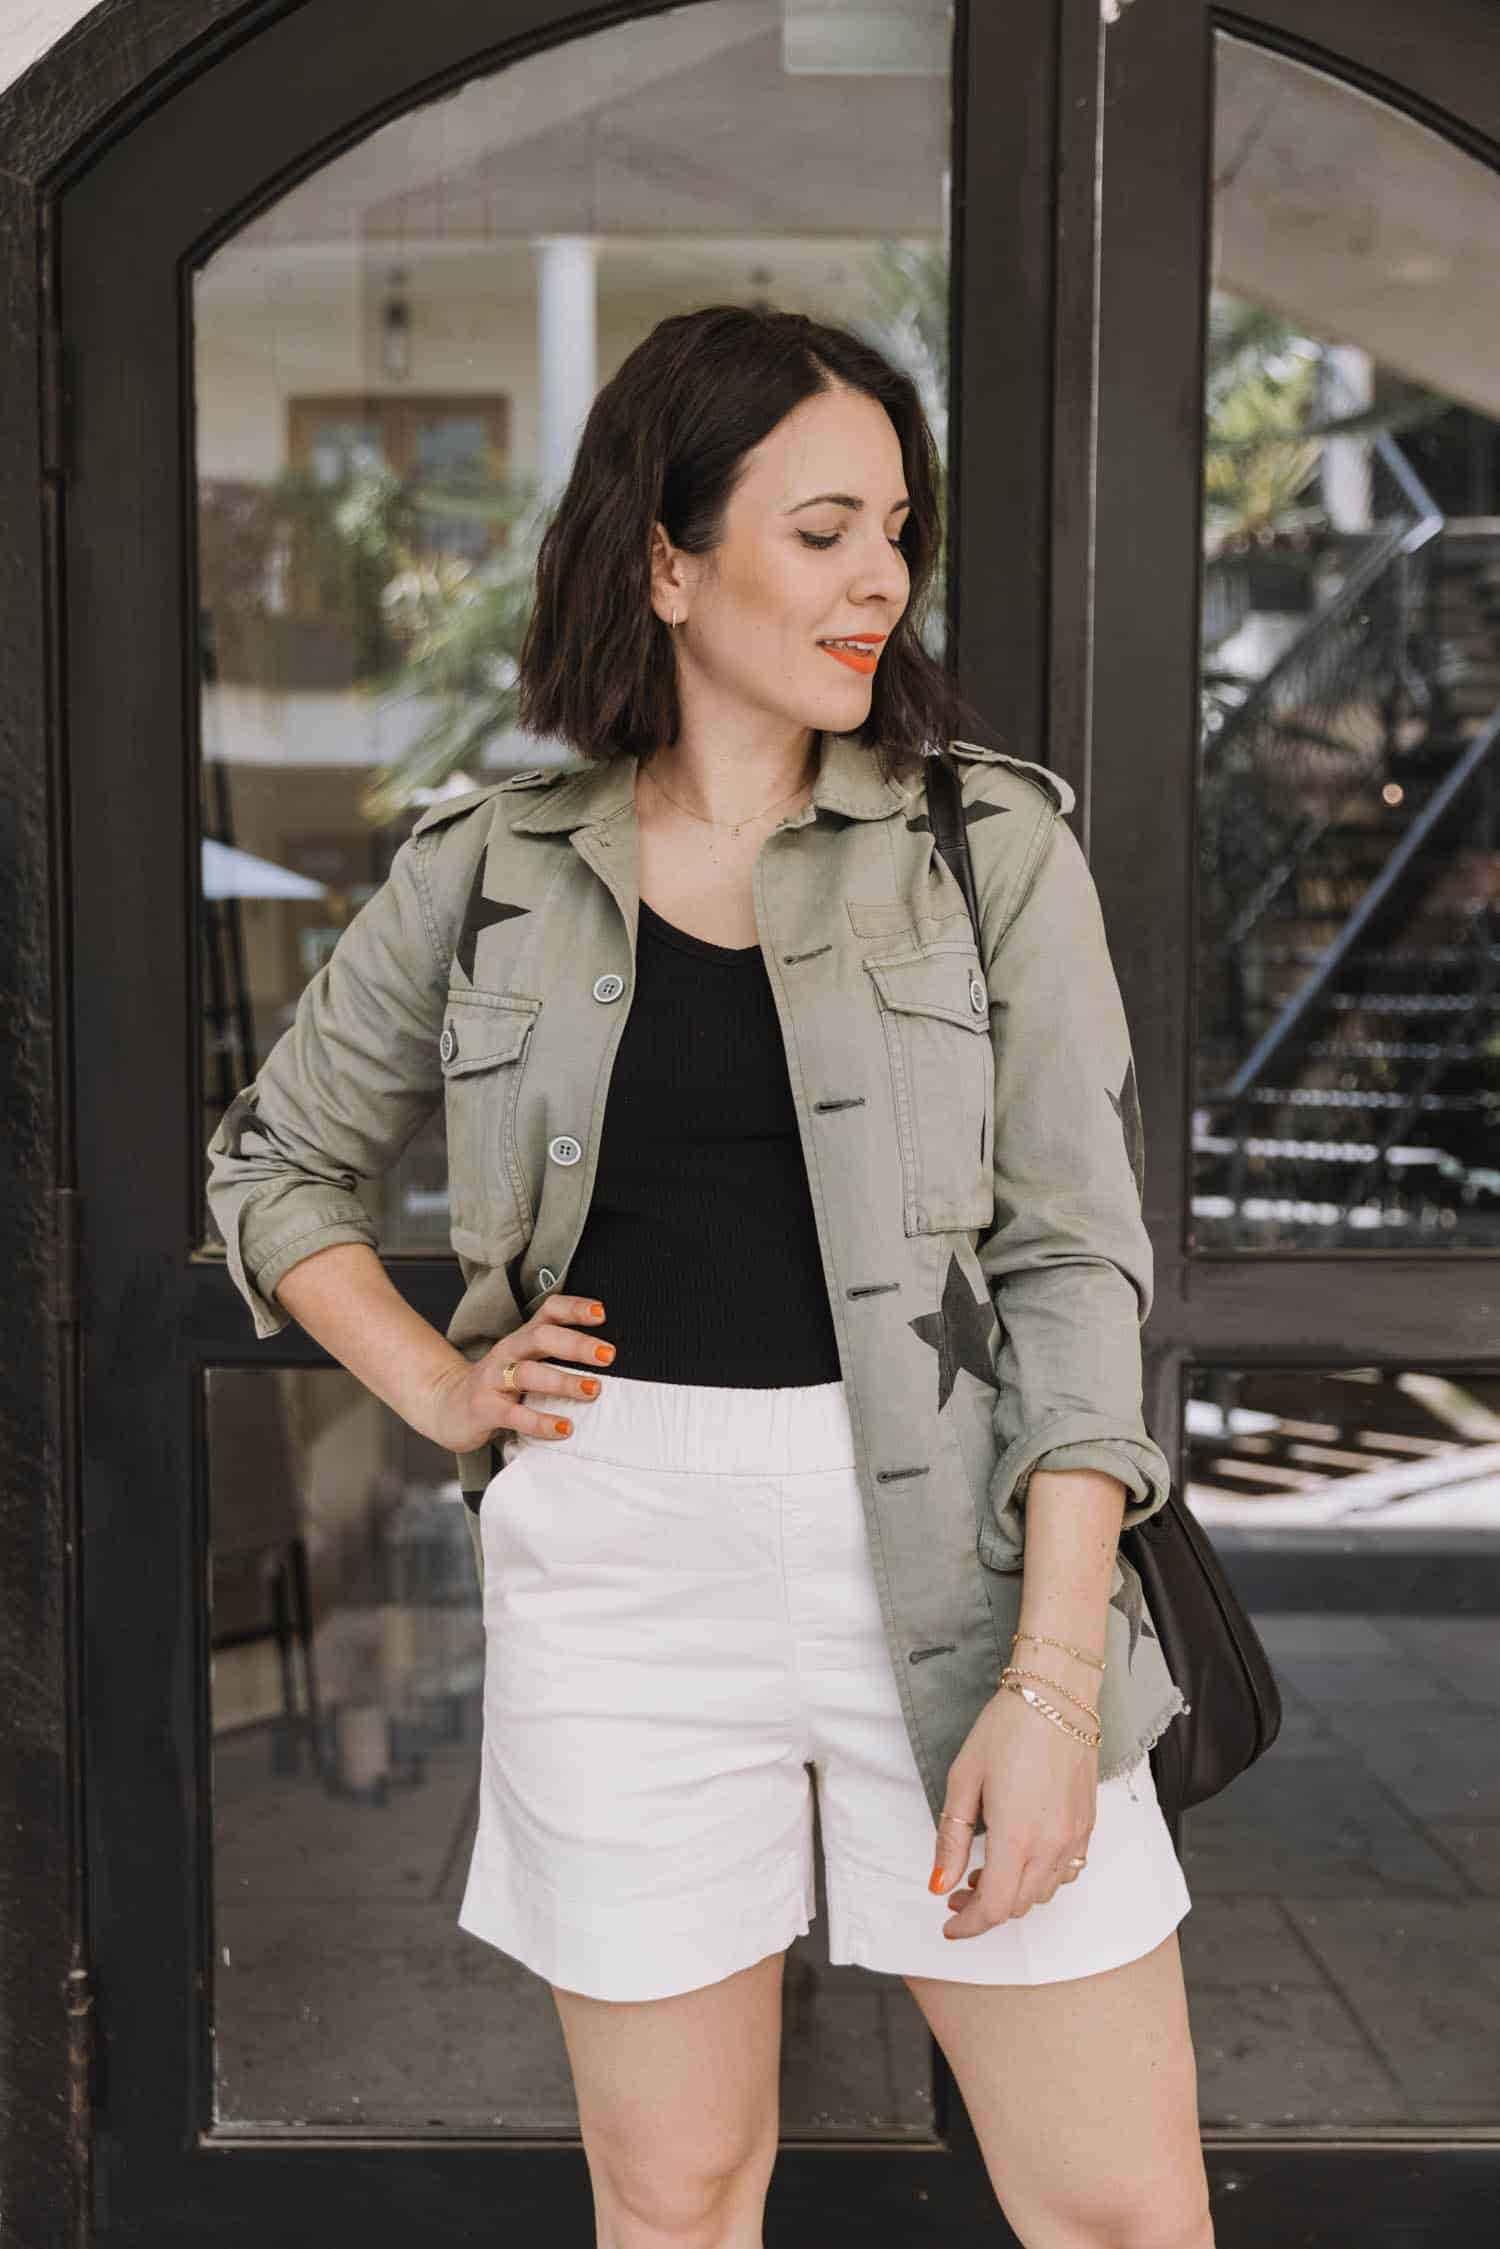 Is the Everlane Shorts worth it